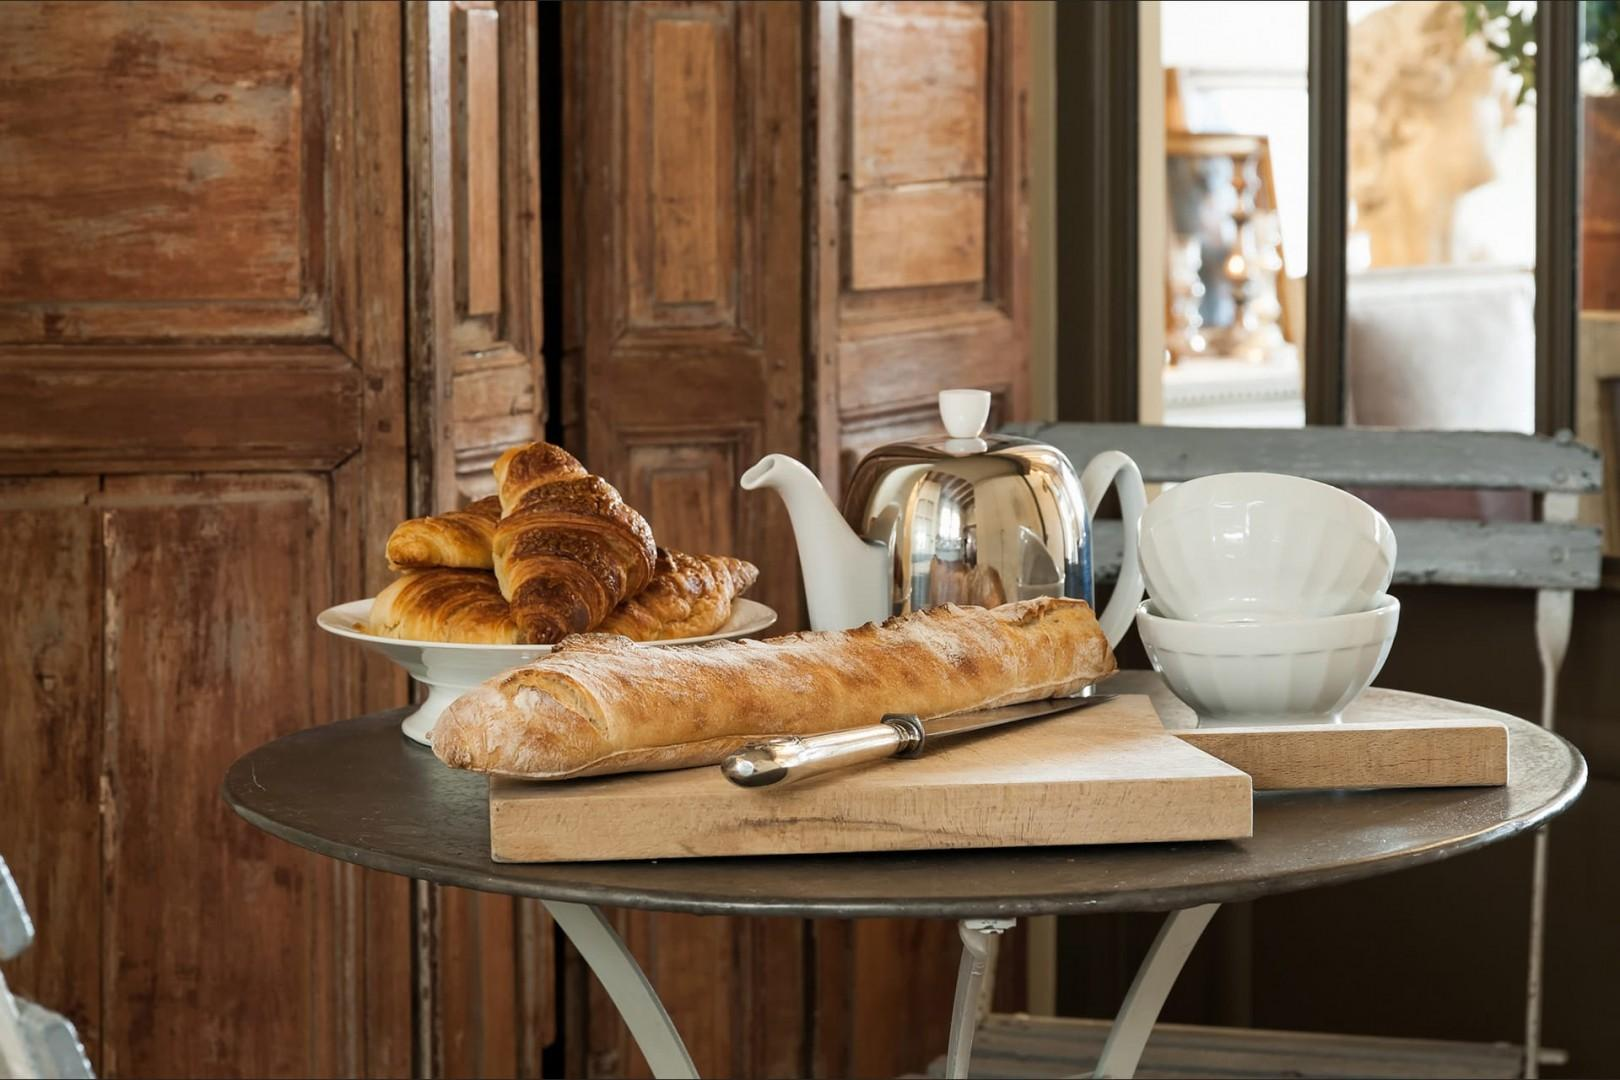 Start your day with a typical Parisian breakfast of croissants, baguettes and coffee!